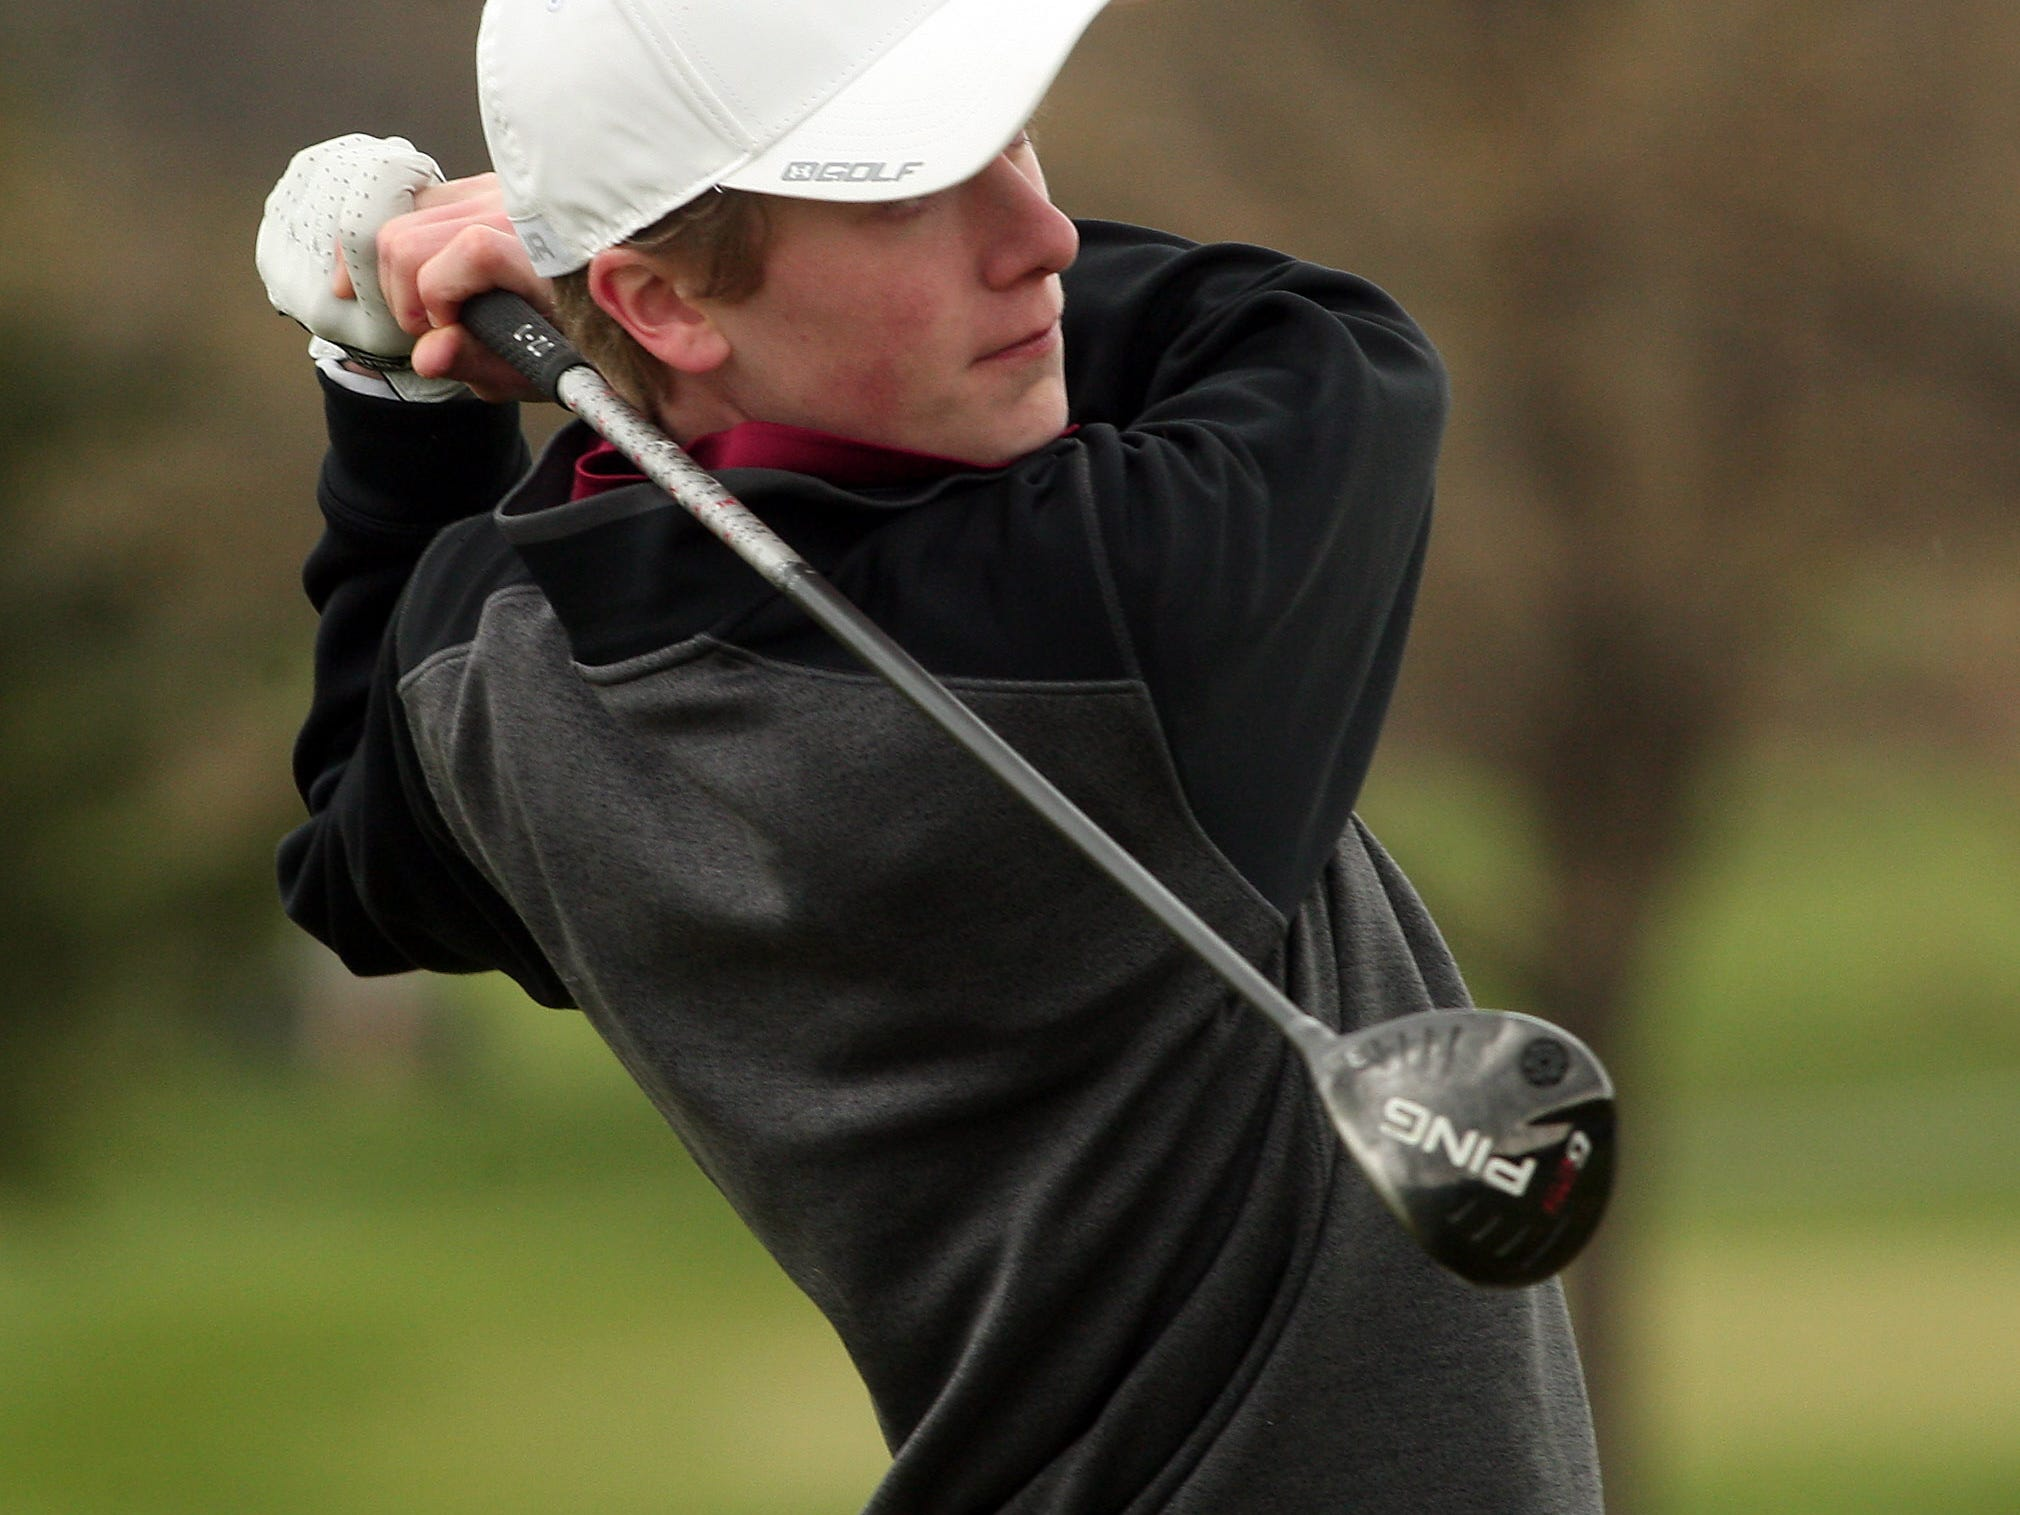 Morristown's Evan Quinn drives from the first tee during the golf MCT on April 23.